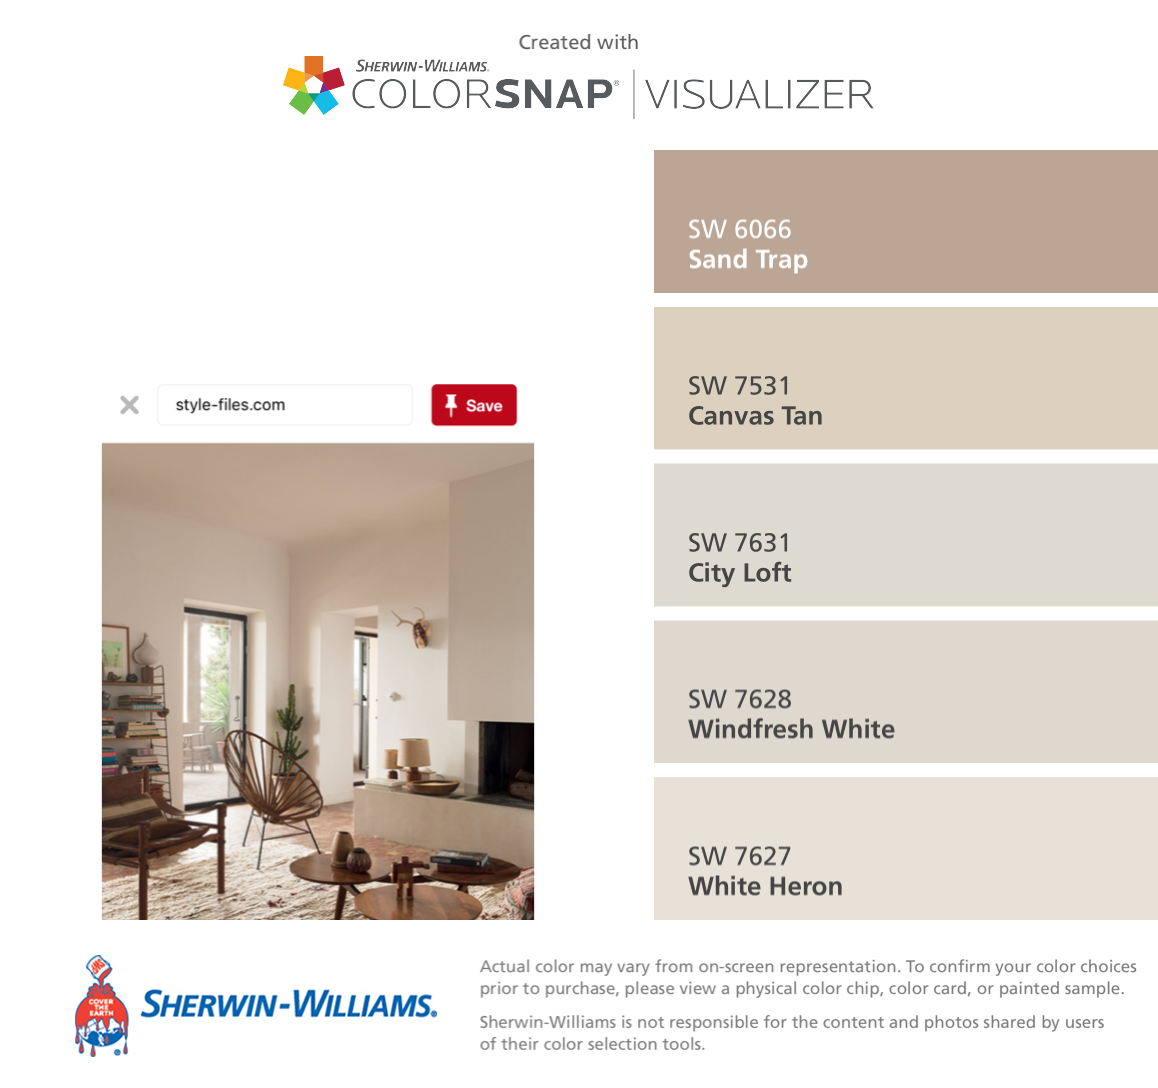 I found these colors with ColorSnap® Visualizer for iPhone by Sherwin-Williams: Sand Trap (SW 6066), Canvas Tan (SW 7531), City Loft (SW 7631), Windfresh White (SW 7628), White Heron (SW 7627). #cityloftsherwinwilliams